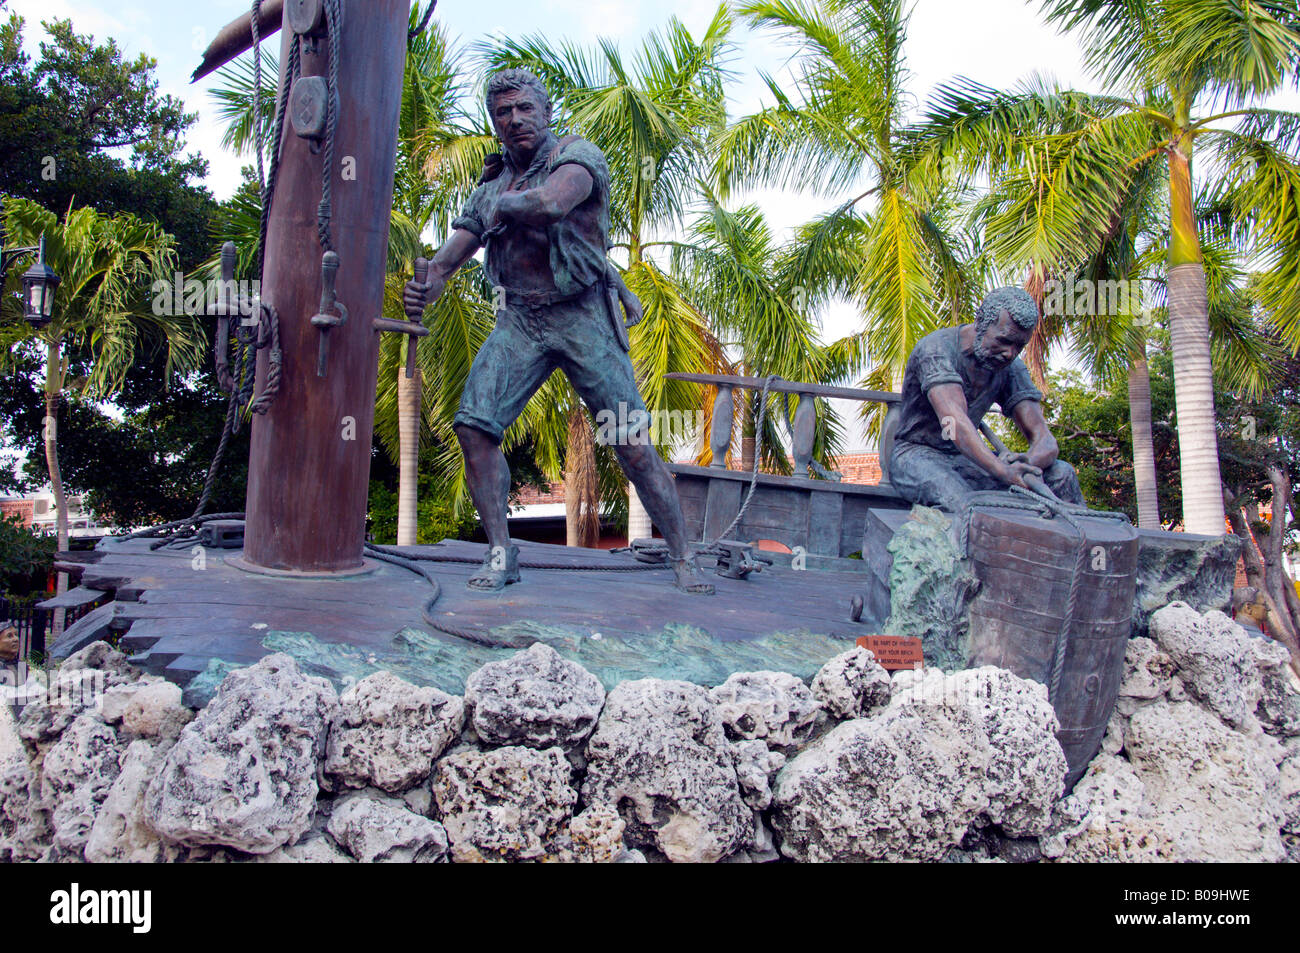 An historic seafaring monument in Mallory Square in Key West Florida USA - Stock Image